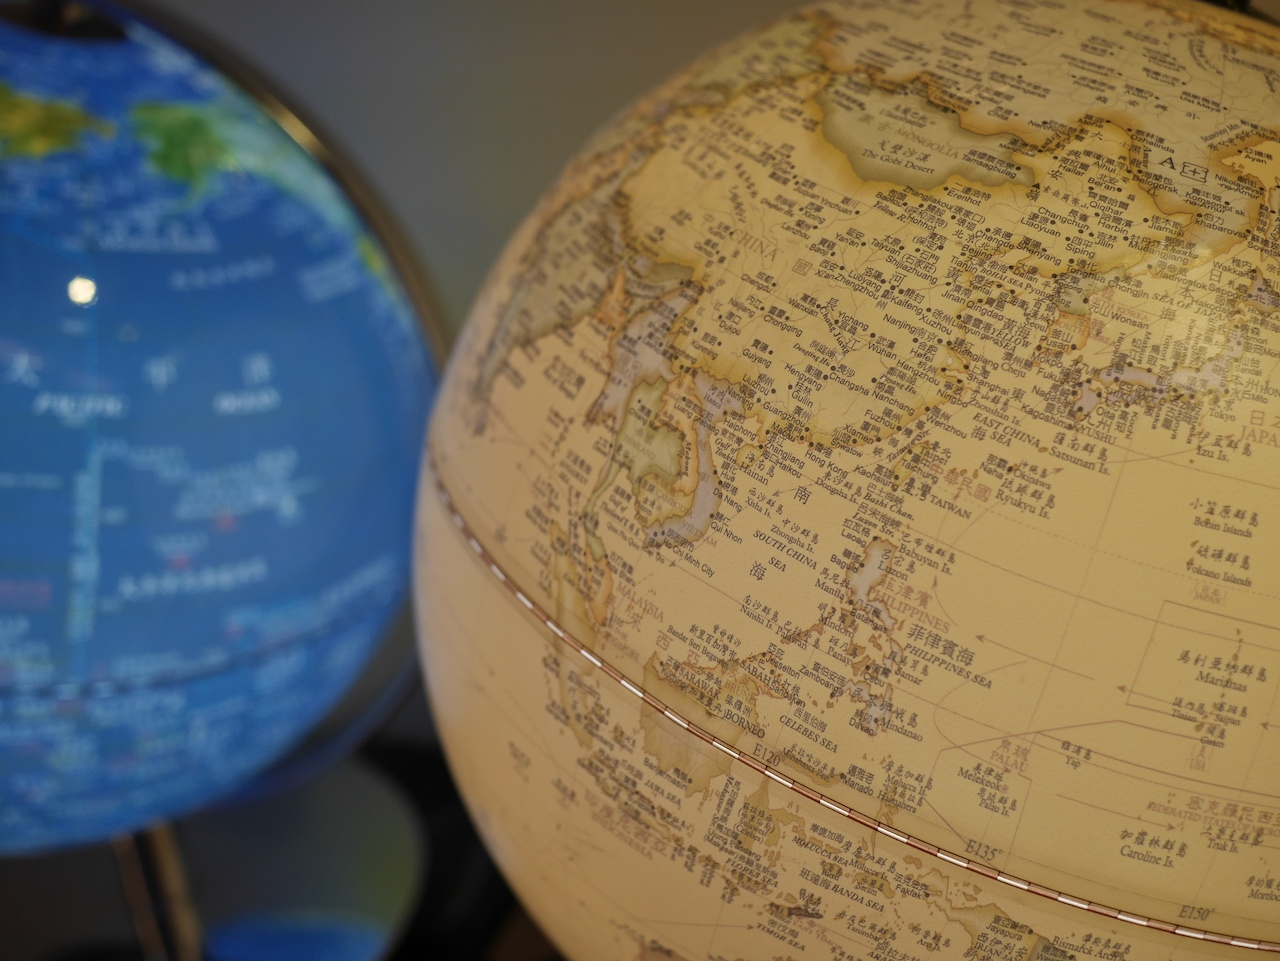 Globes without nine dashes taiwans claims in the south china sea globe for sale in taipei publicscrutiny Image collections